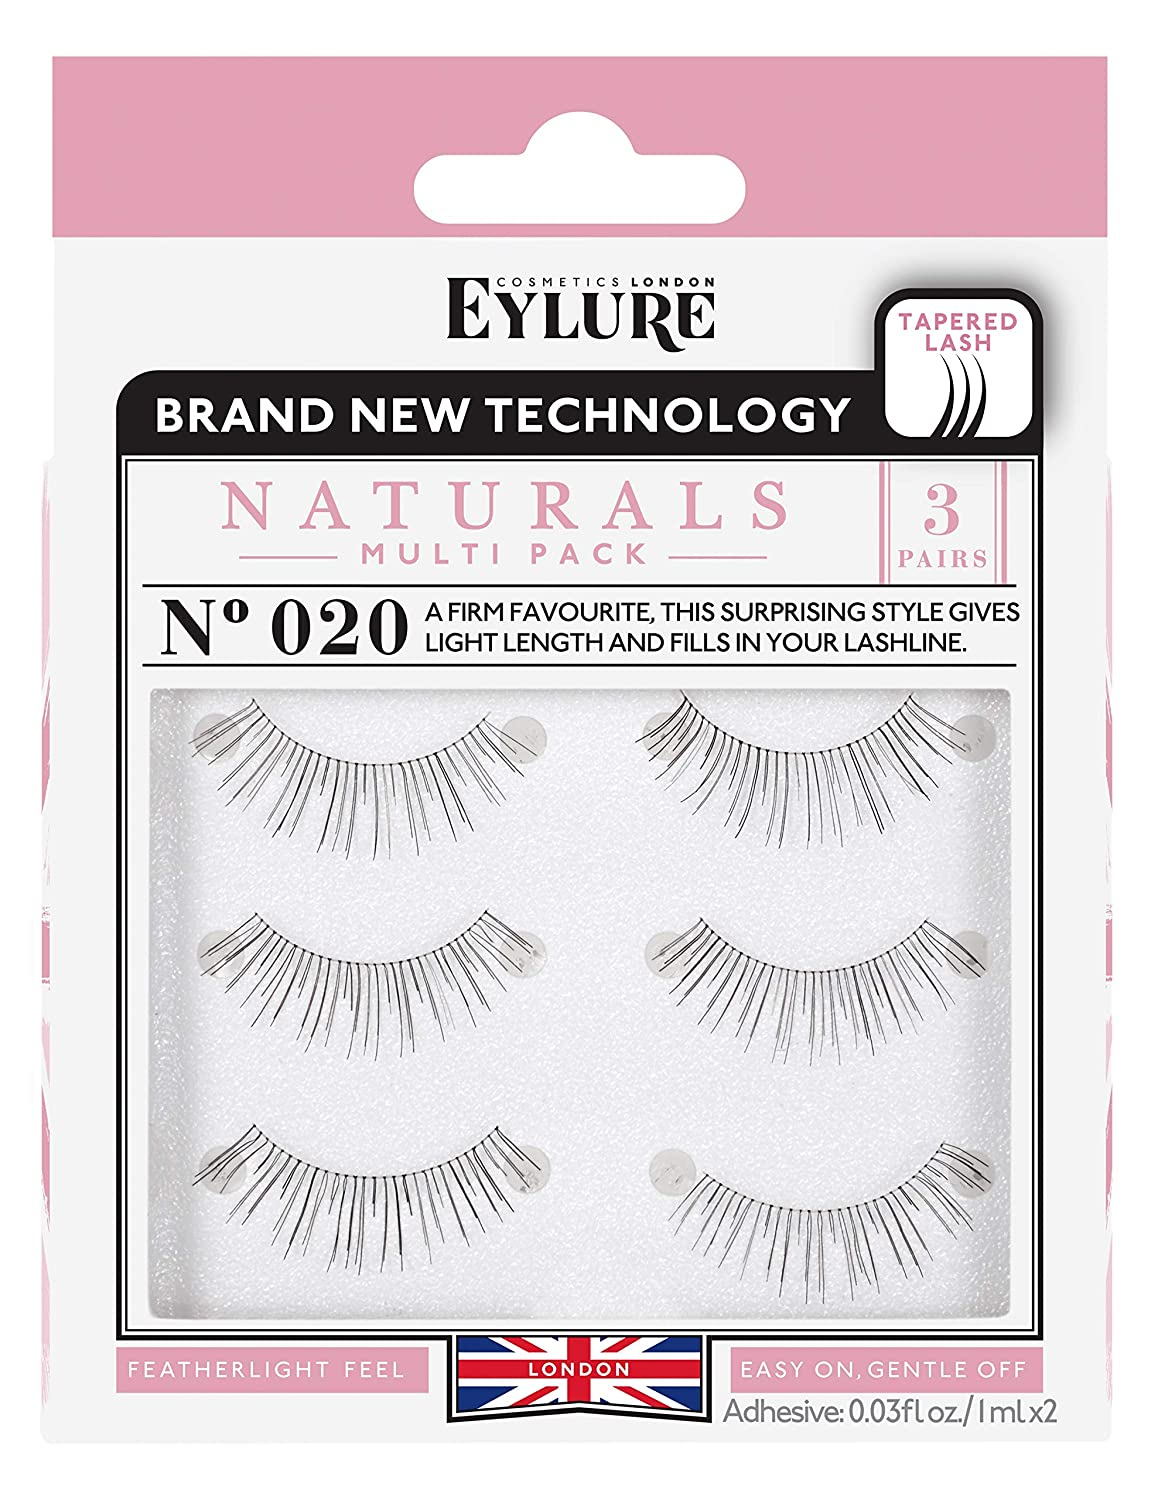 3baae48fa73 Eylure Naturals False Eyelashes Multipack, Style No. 020, Reusable ...